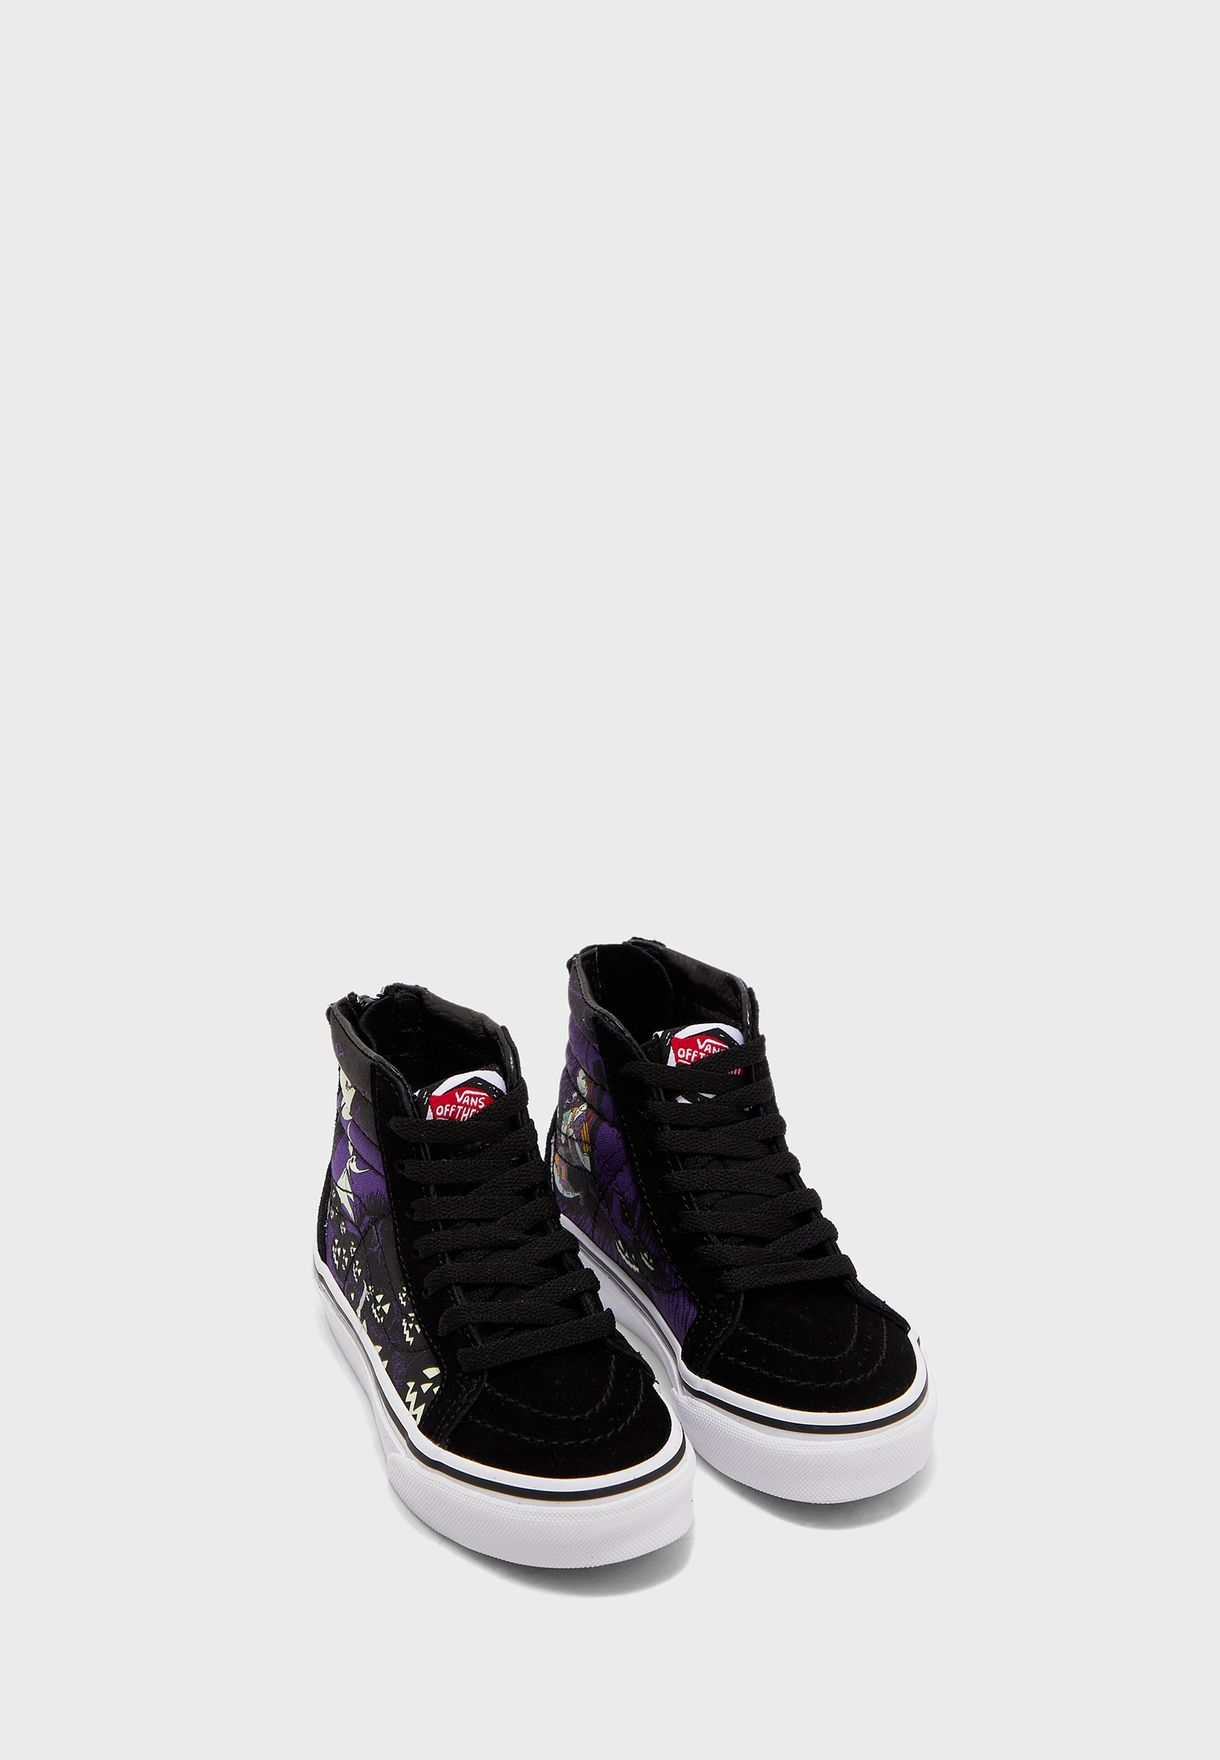 Kids The Nightmare Before Christmas Jacks SK8-Hi Z